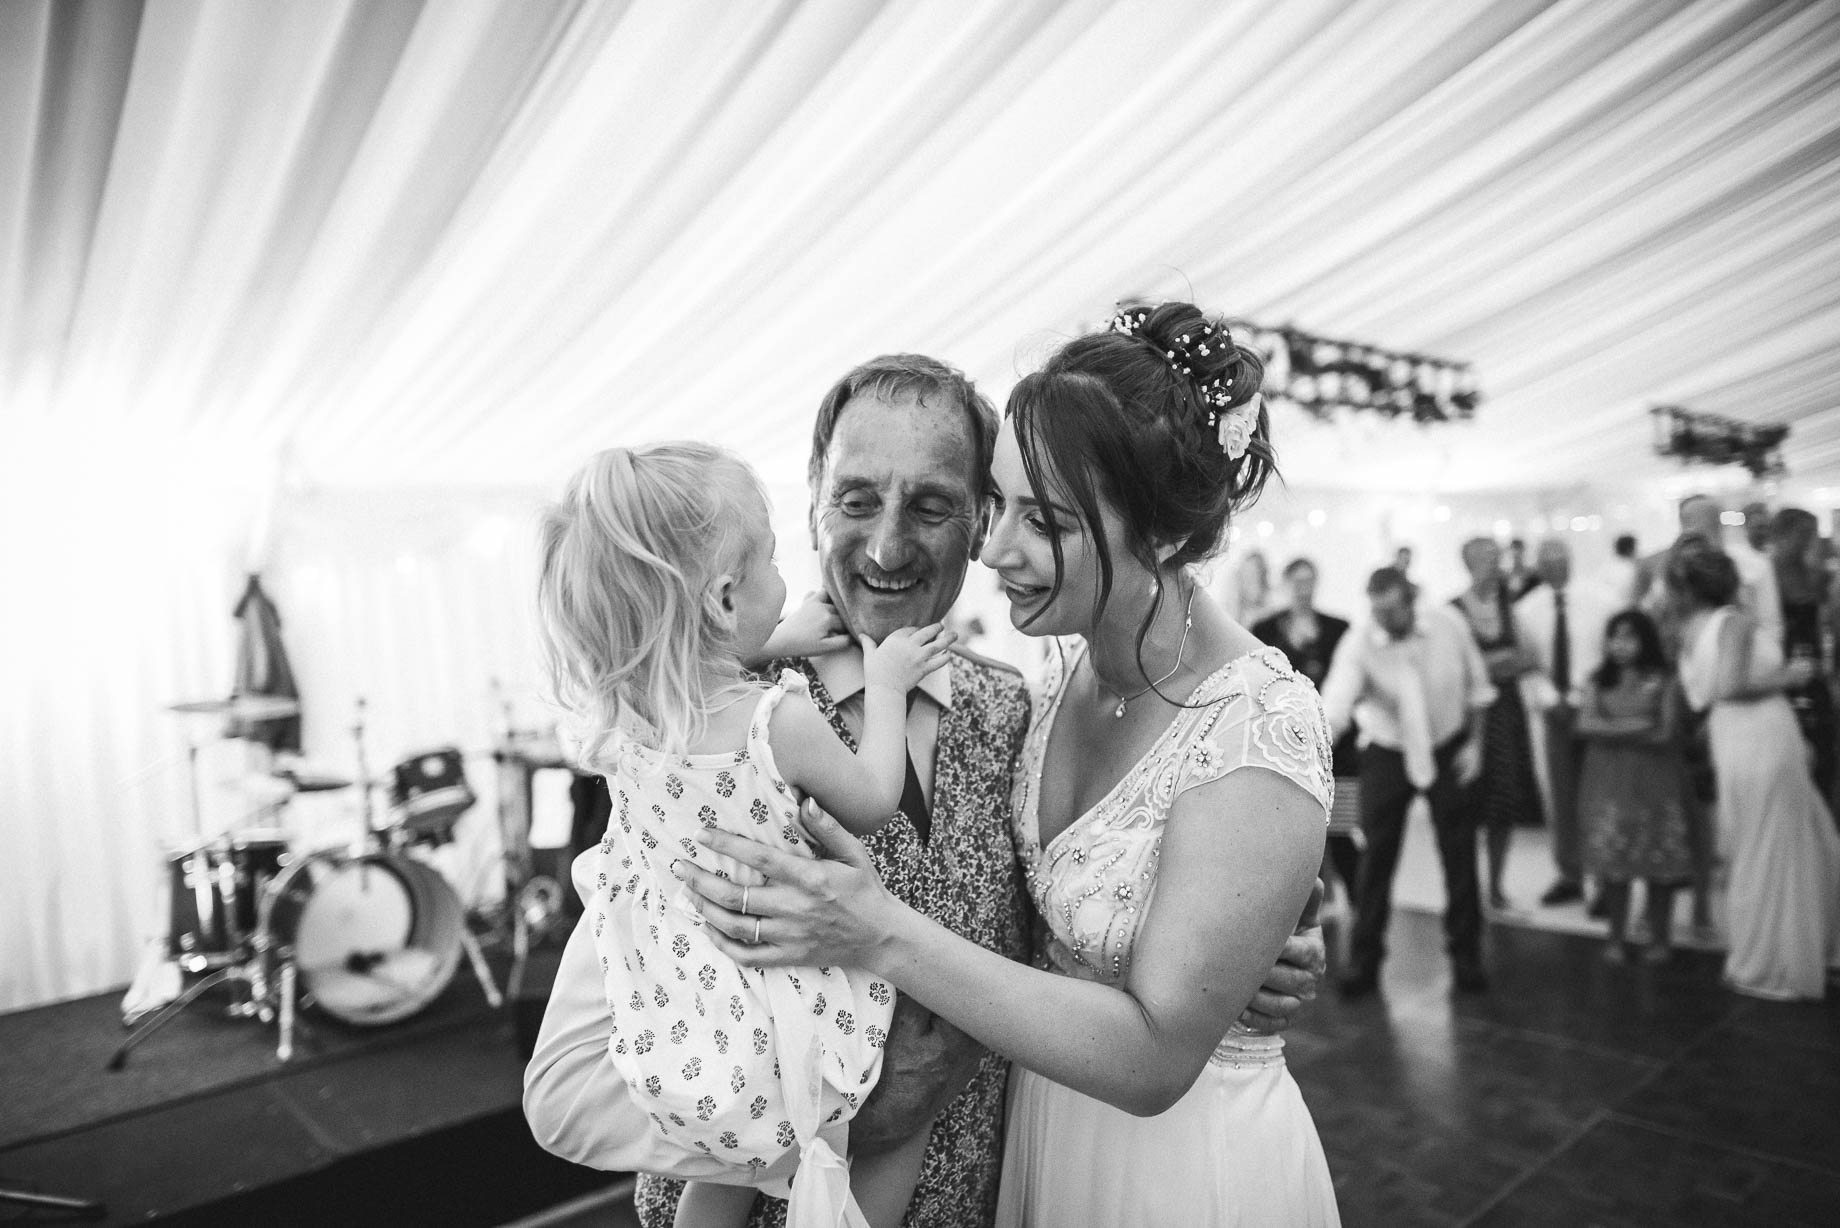 Windsor wedding photography - Guy Collier Photography - Libby and Alex (186 of 189)